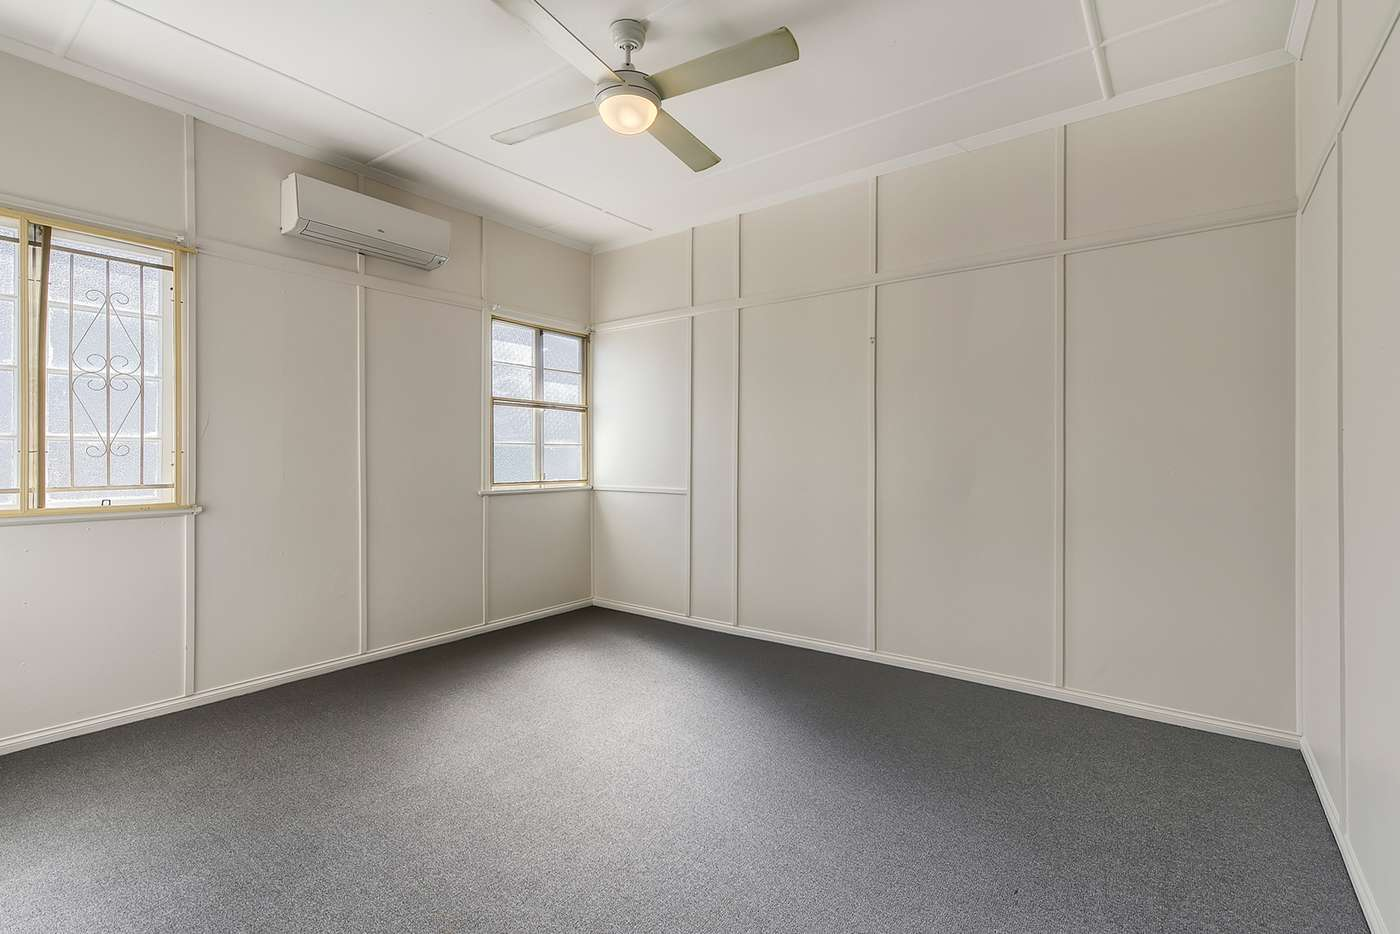 Sixth view of Homely house listing, 36 Church Road, Zillmere QLD 4034